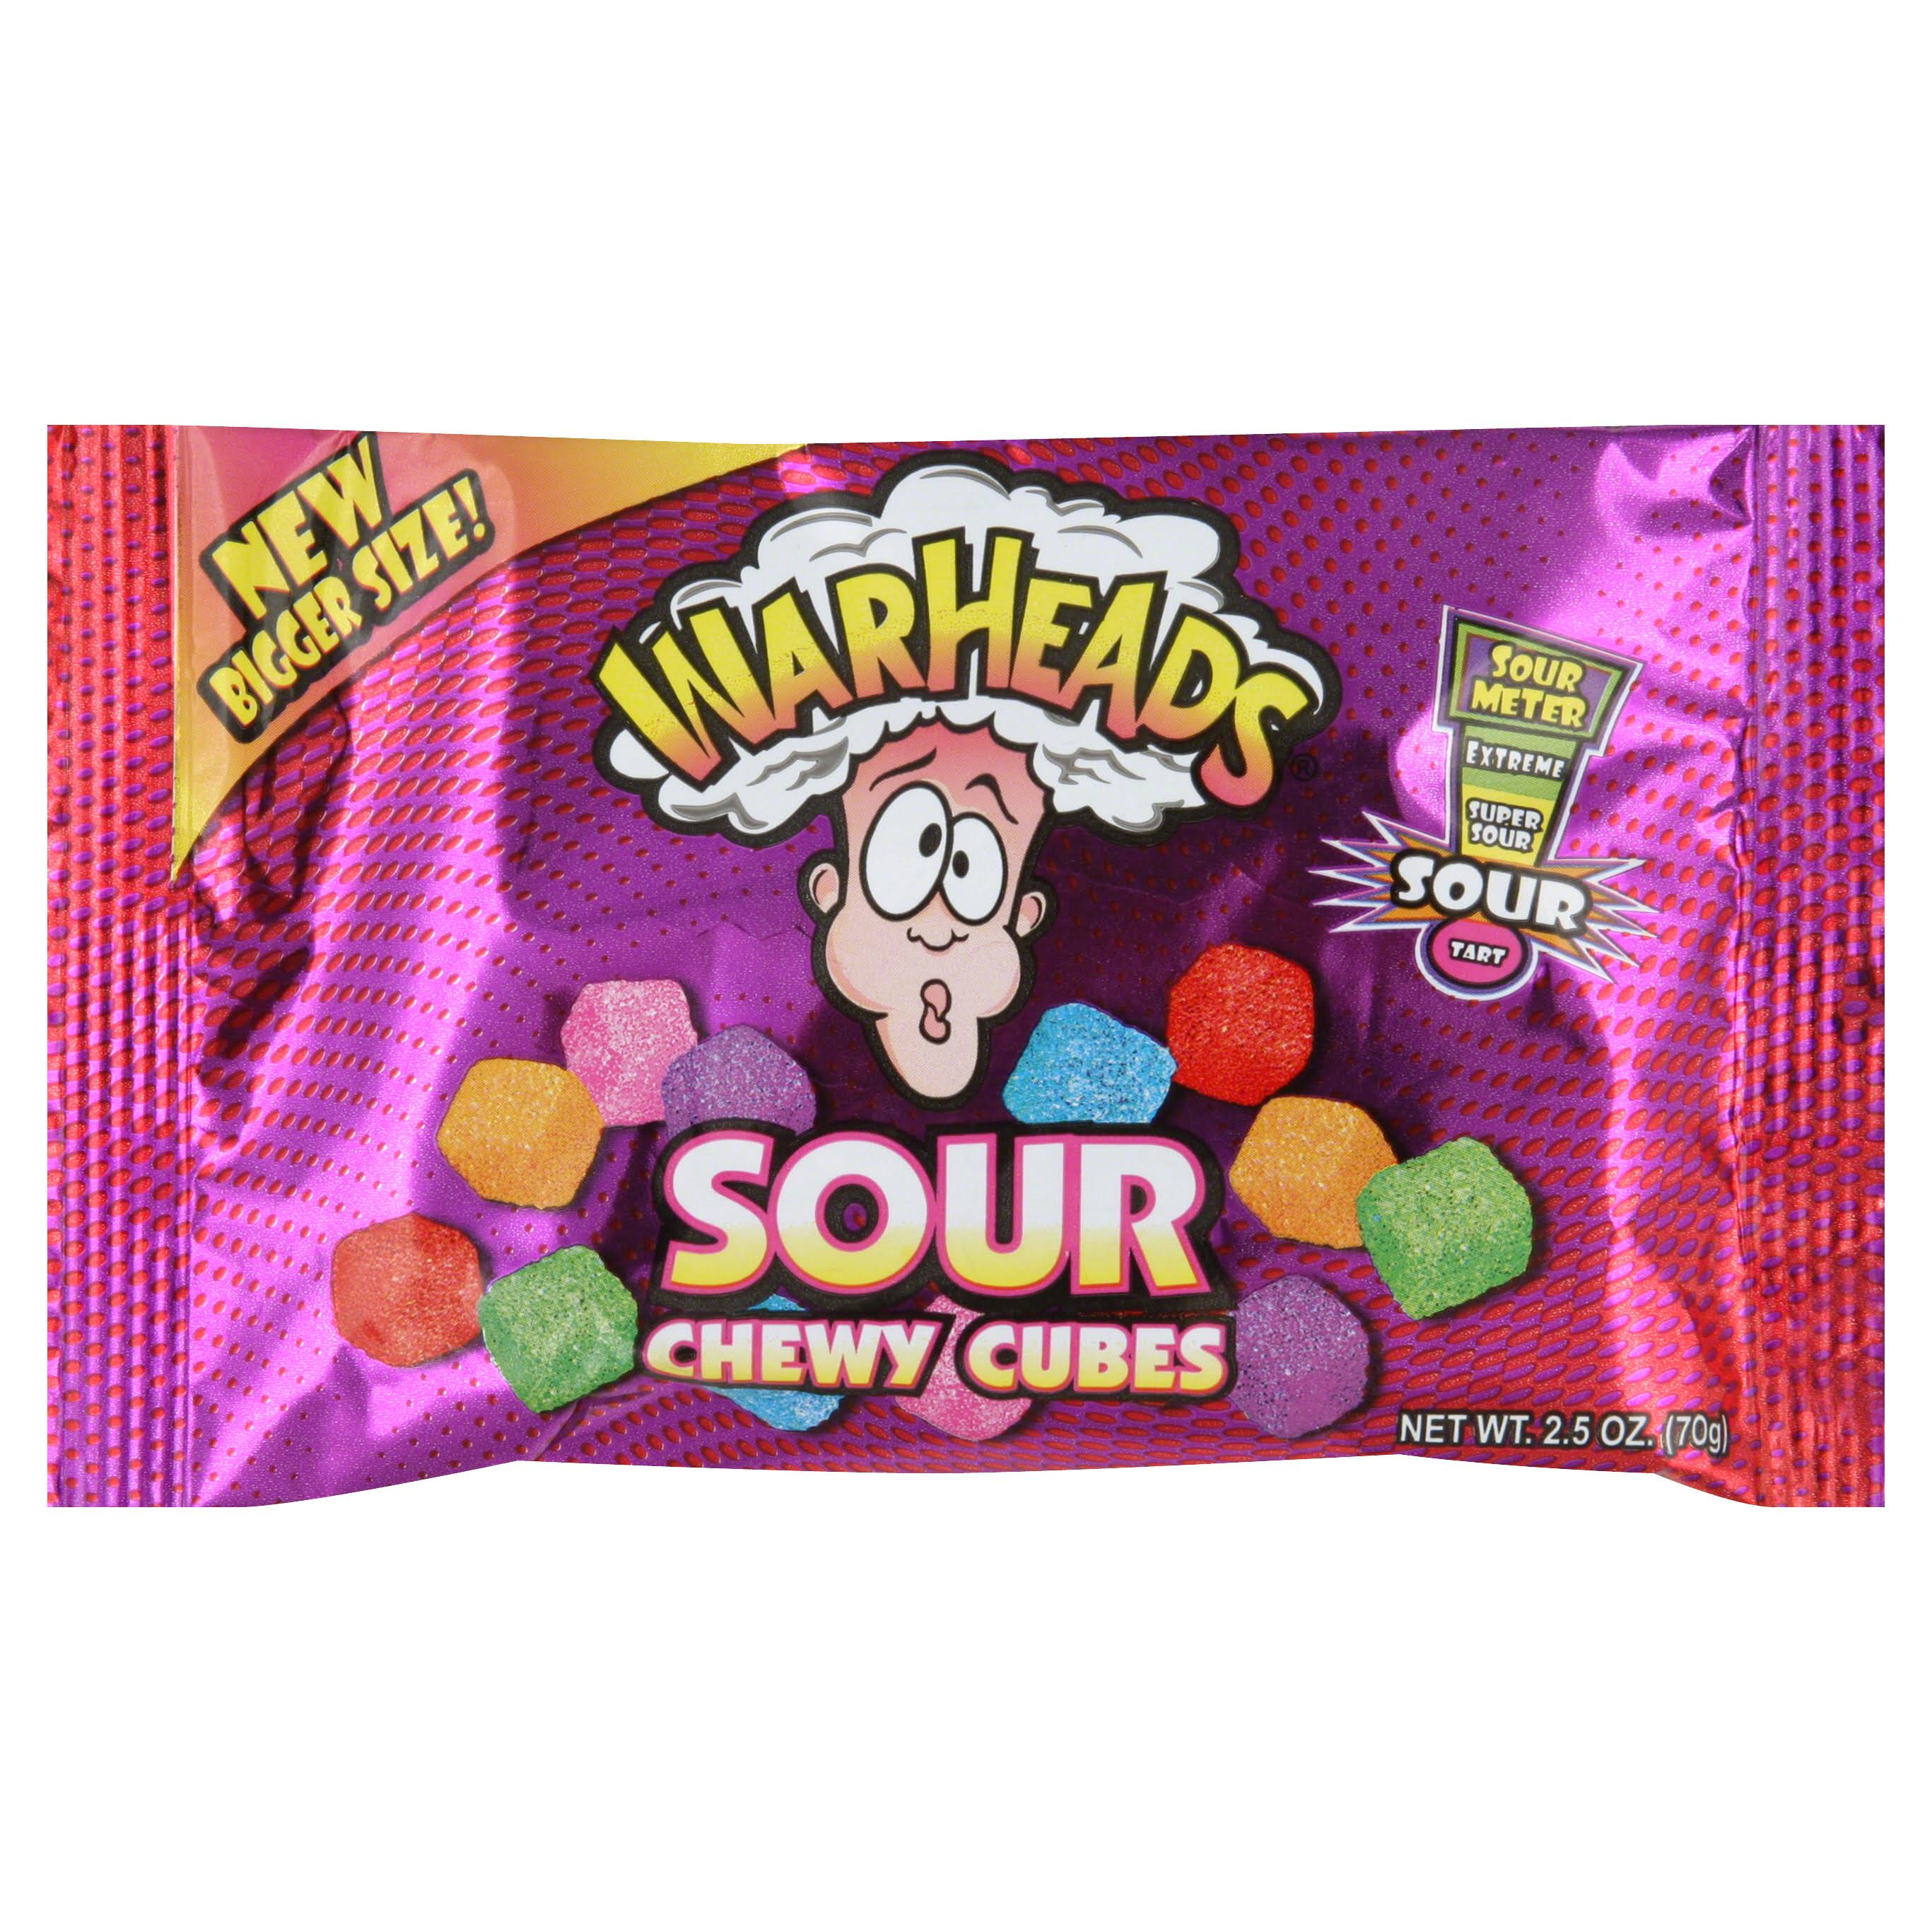 Warheads Sour Chewy Cubes 70g by Planet Candy